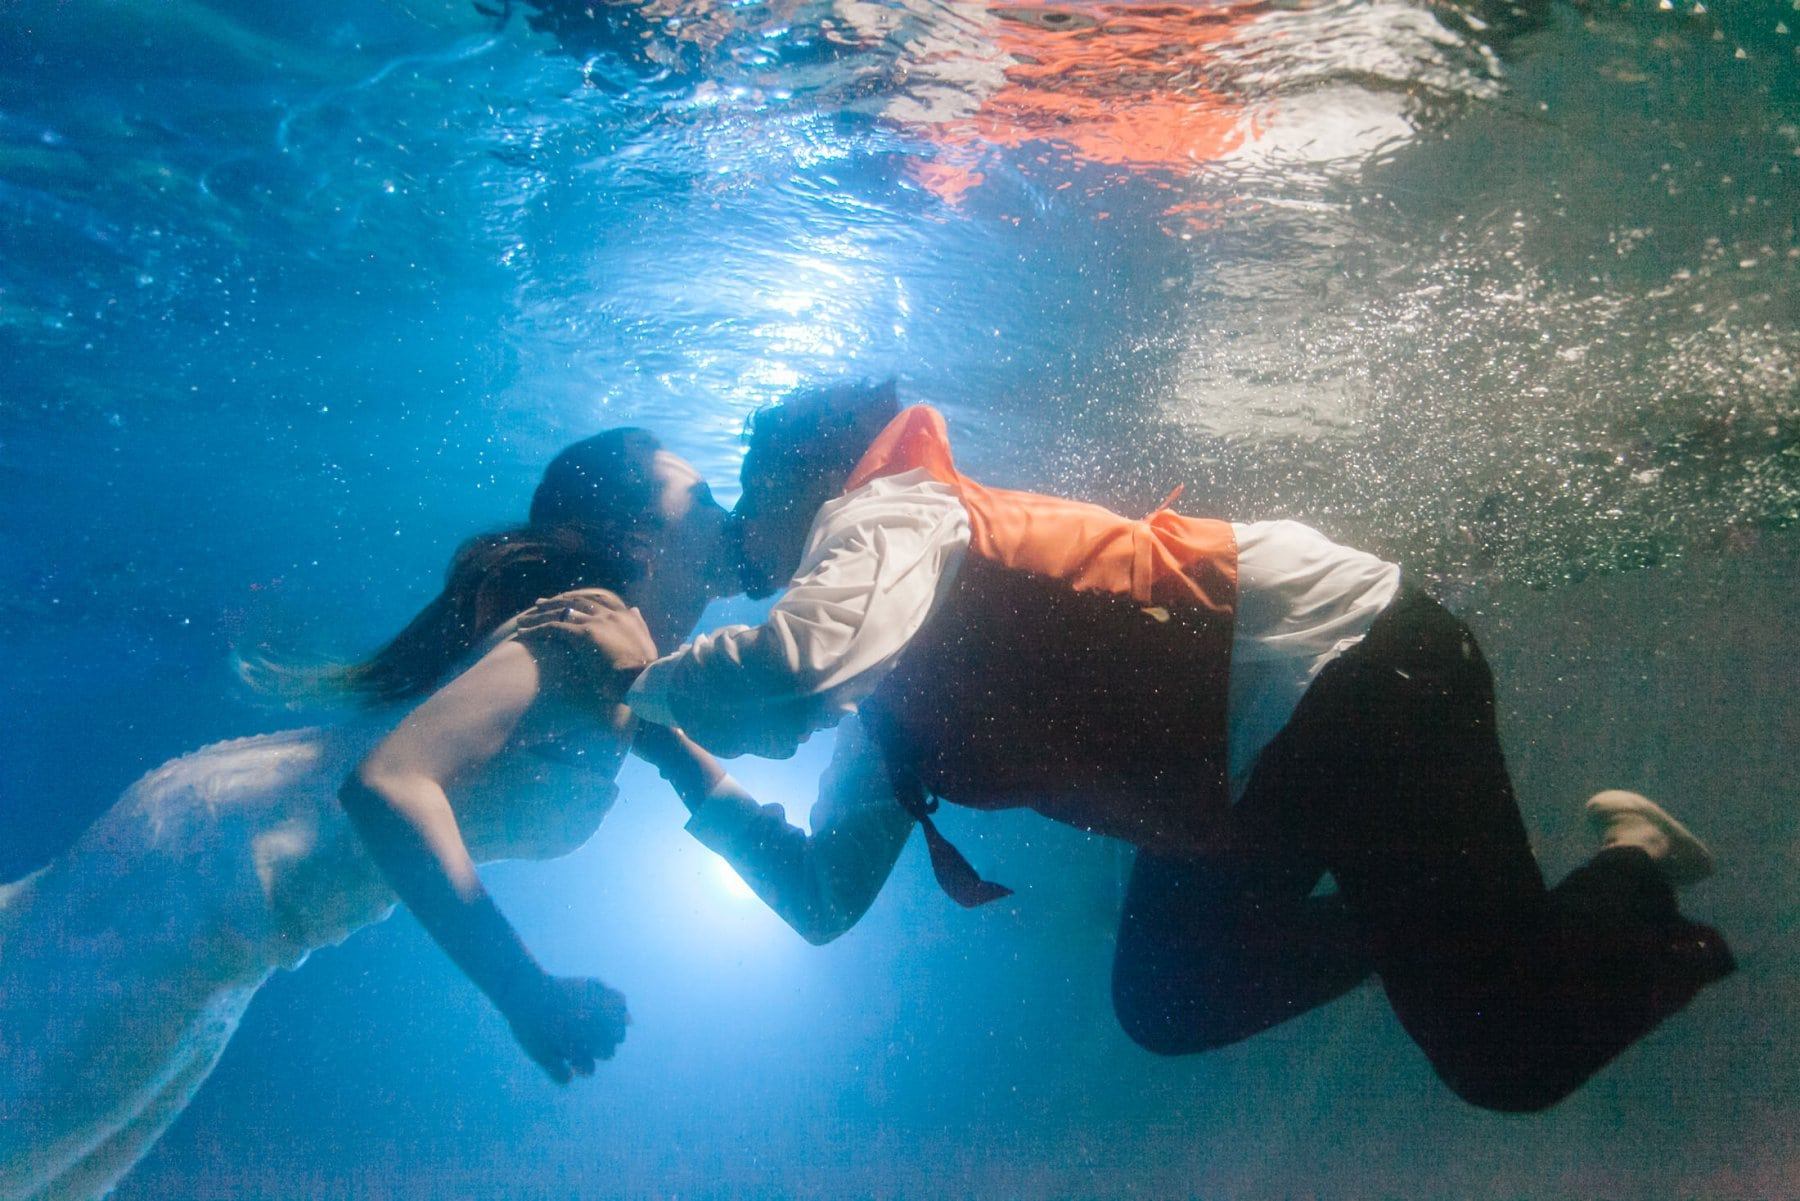 bride and groom jumping into pool at wedding reception underwater